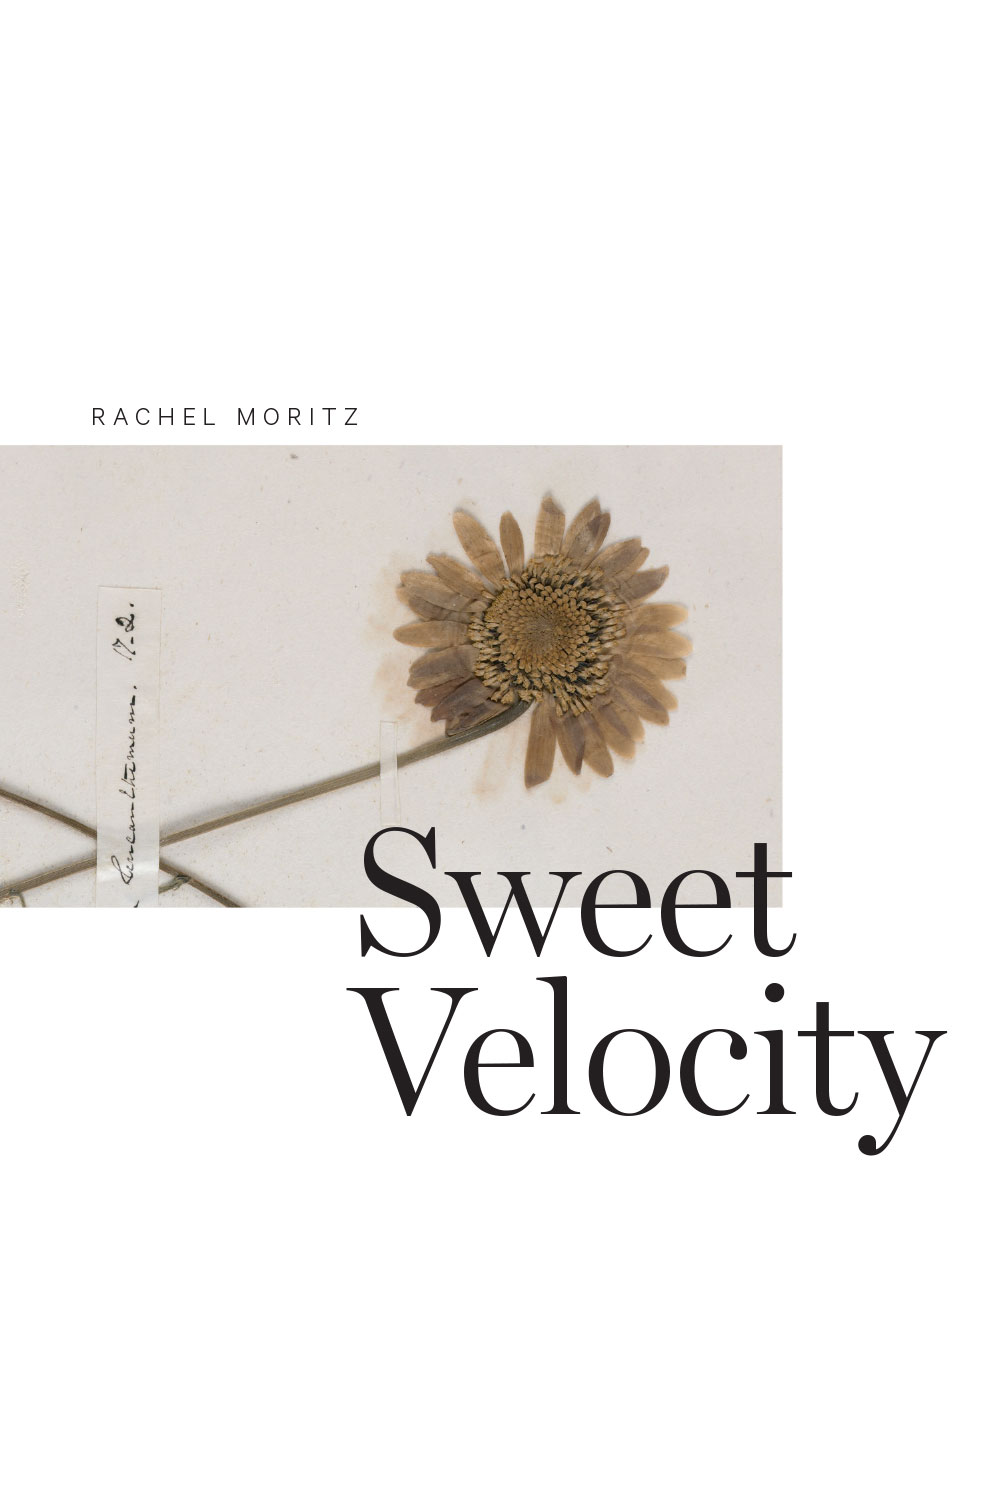 Rob mclennans blog rachel moritz sweet velocity in moritz poems the sweet velocity of time only increases in speed and intensity including a series of moments both caught and missed attempting to fandeluxe Gallery